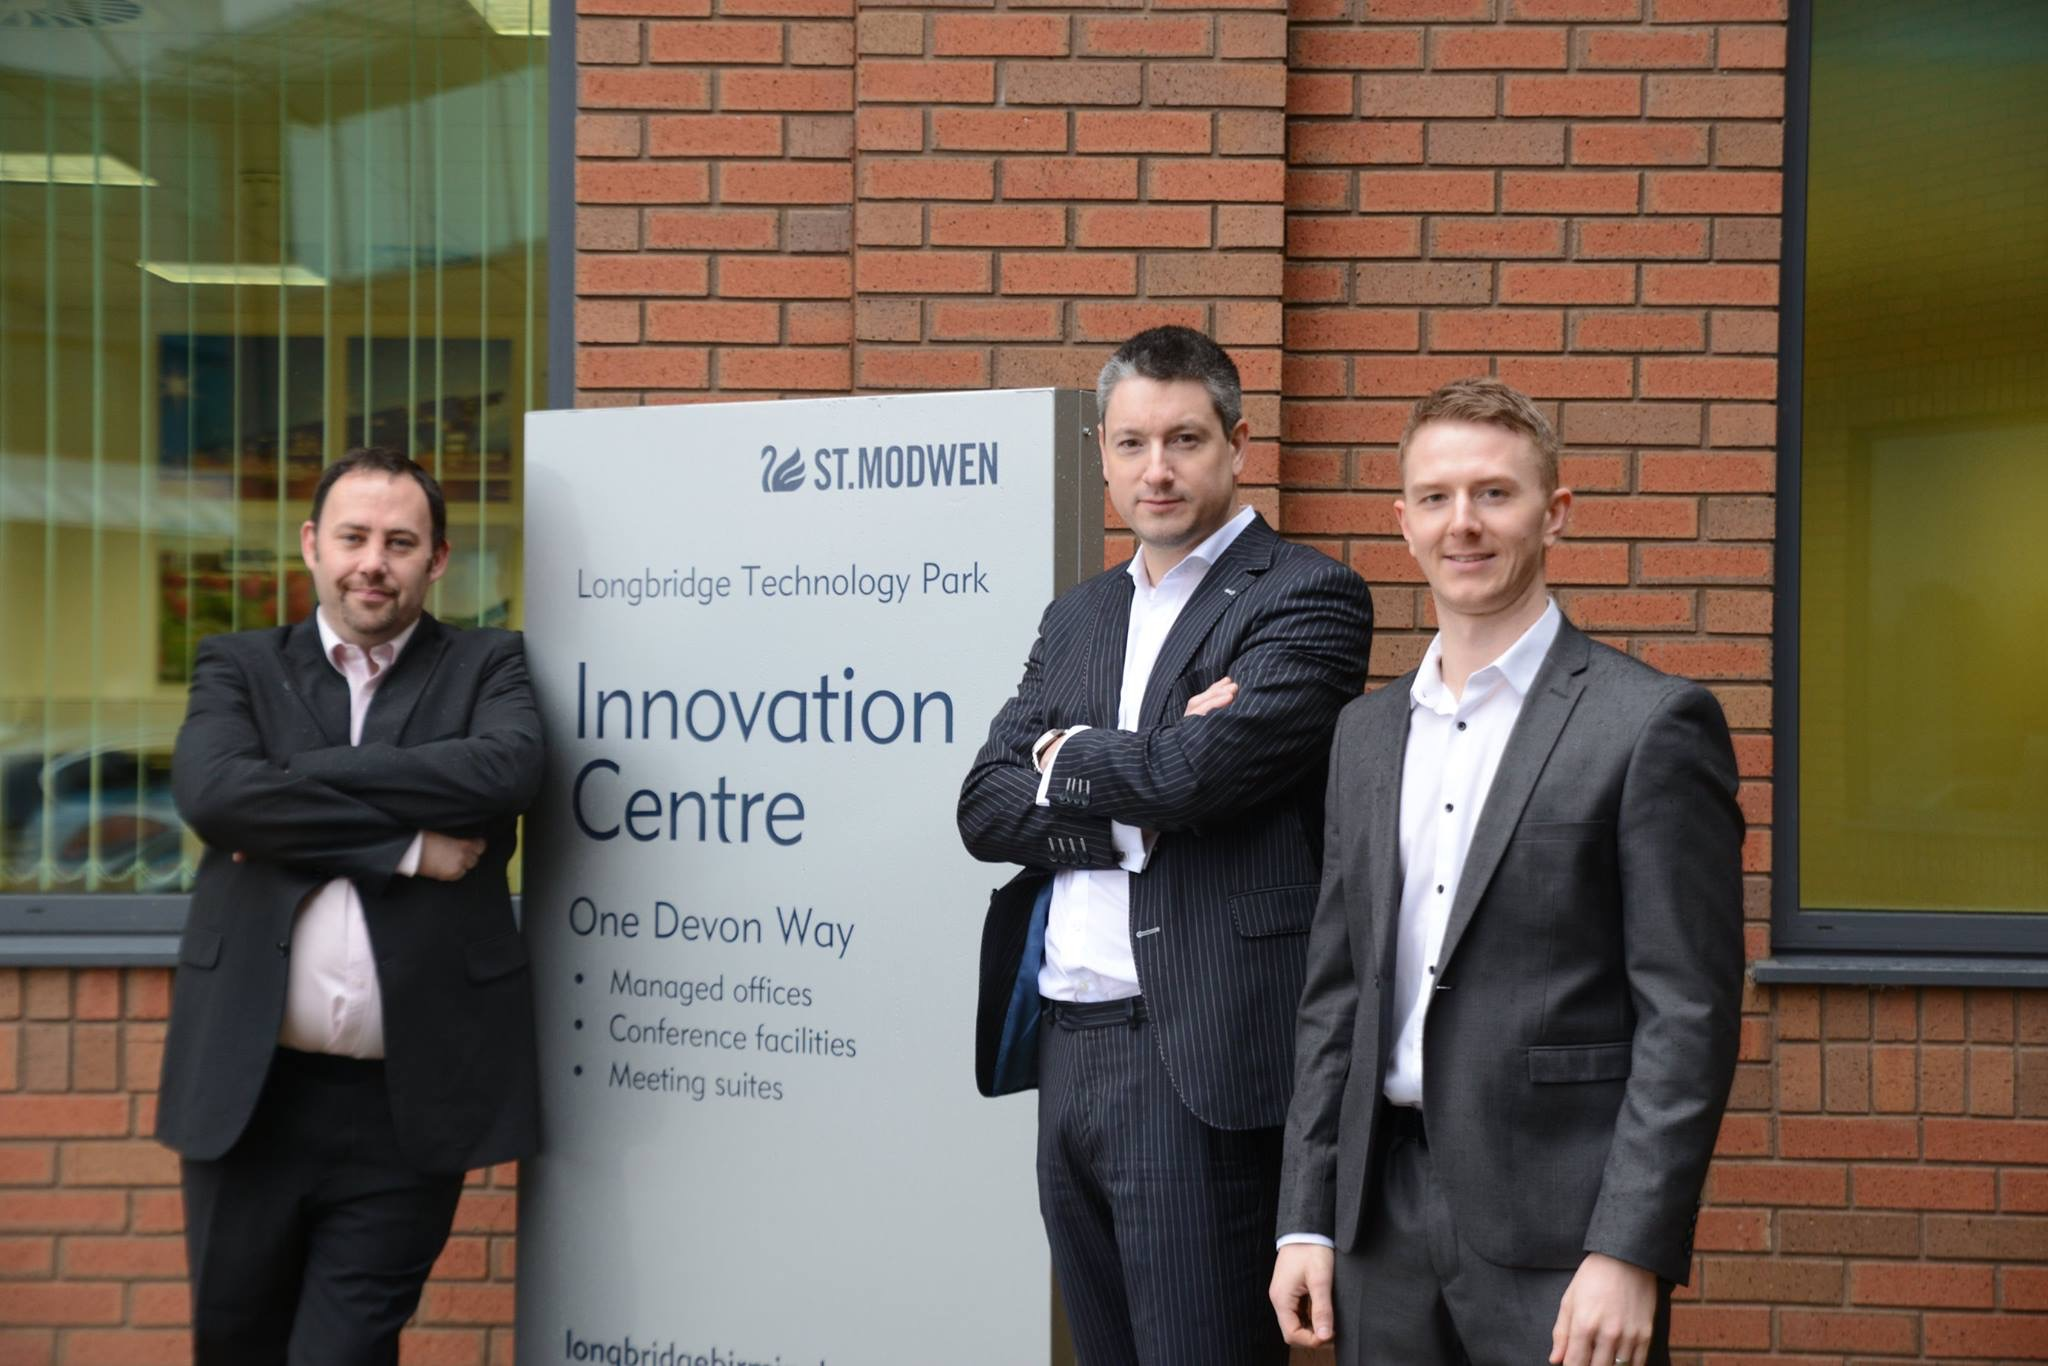 Phil, Simon and Tony at the Innovation Centre